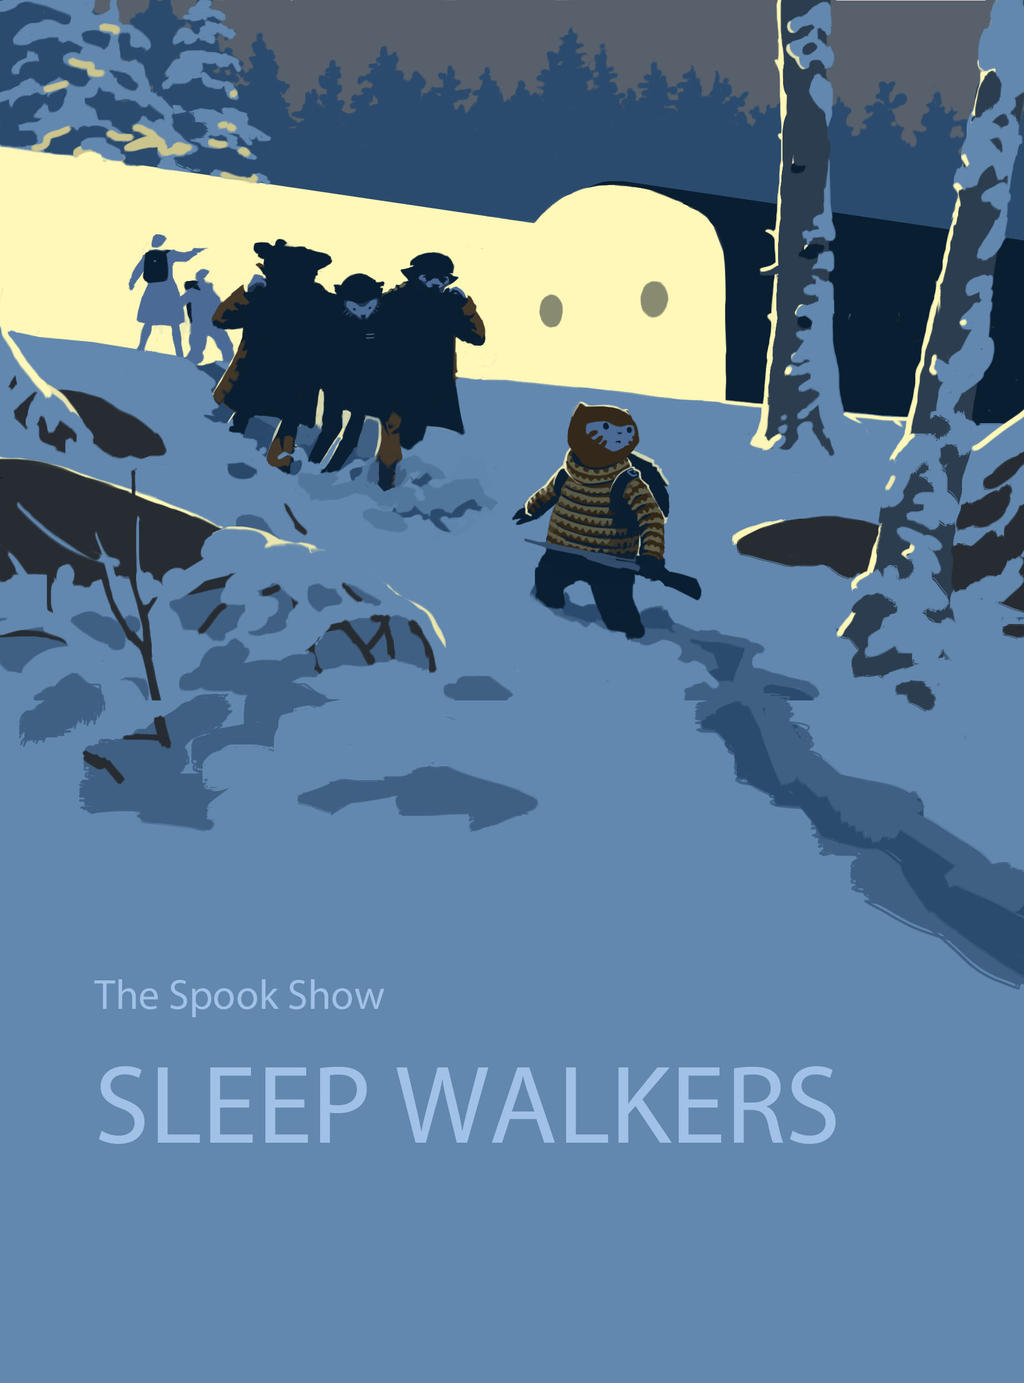 Sleep Walkers graphic novel cover by EllenBarkin